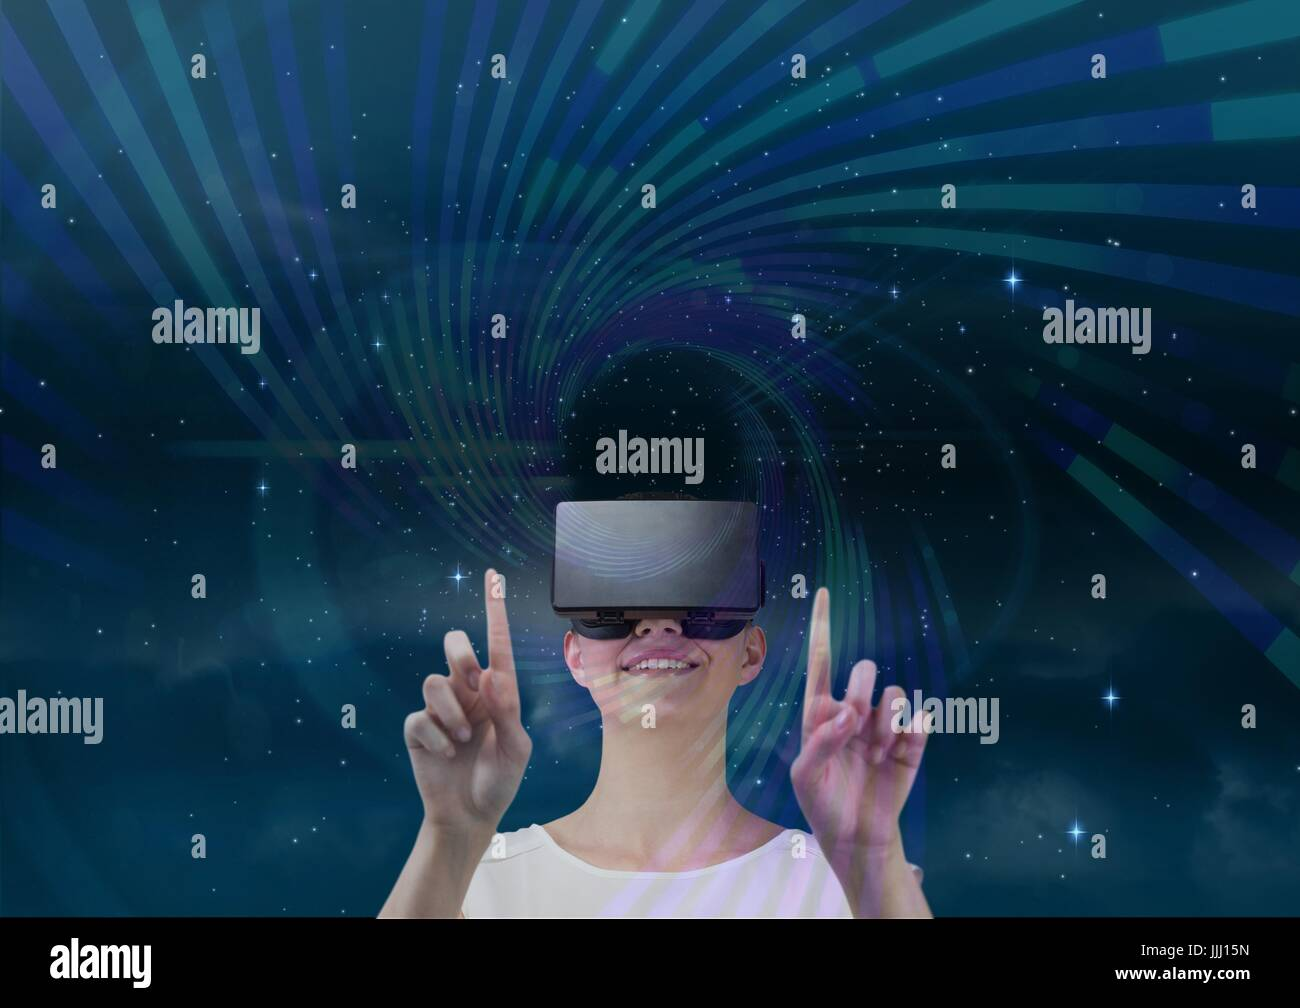 Woman in VR headset touching purple and green interface against blue sky with stars - Stock Image